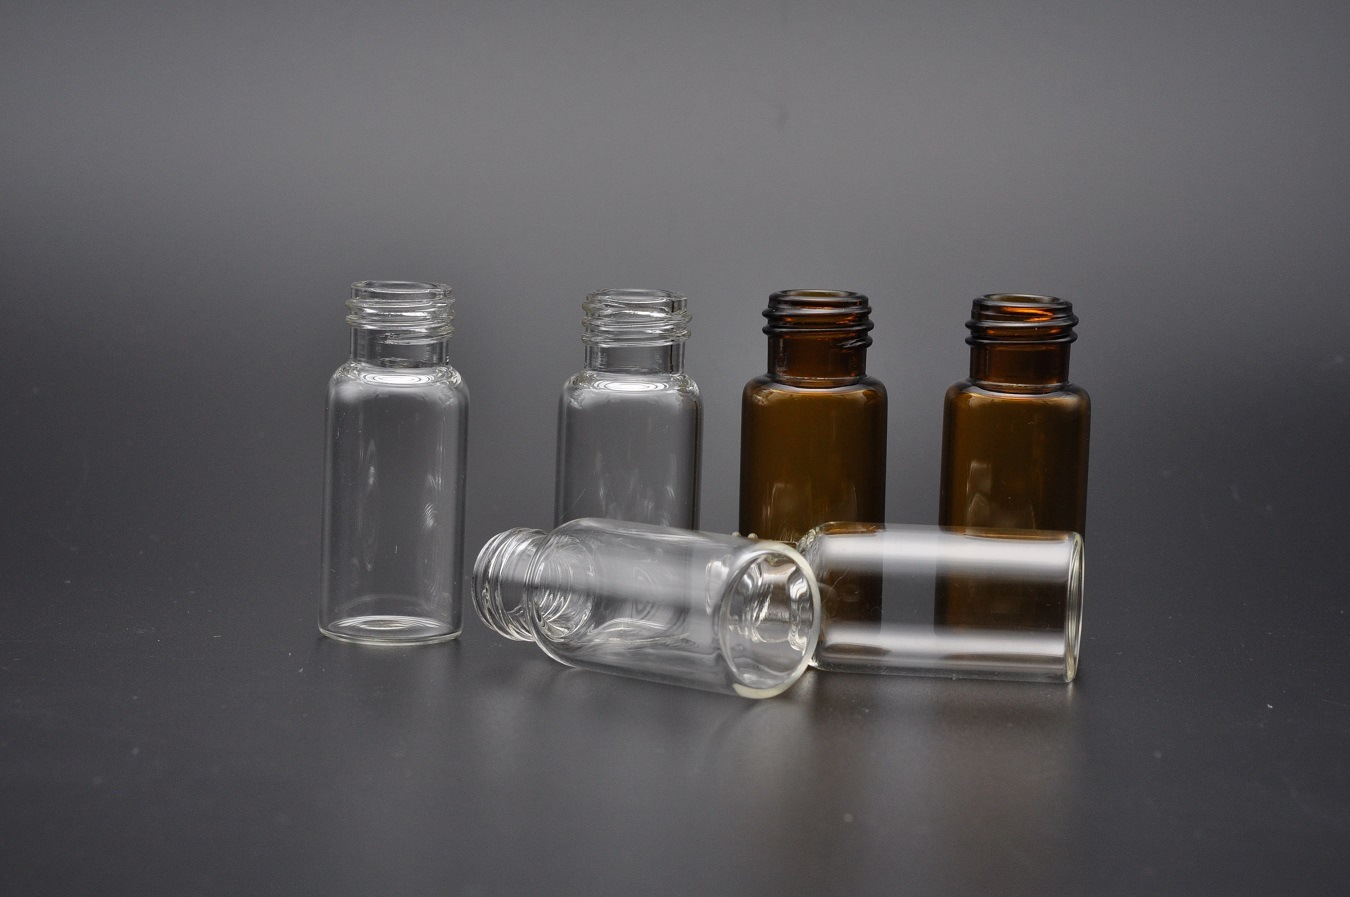 5ml Clear and Amber Tubular Glass Vials